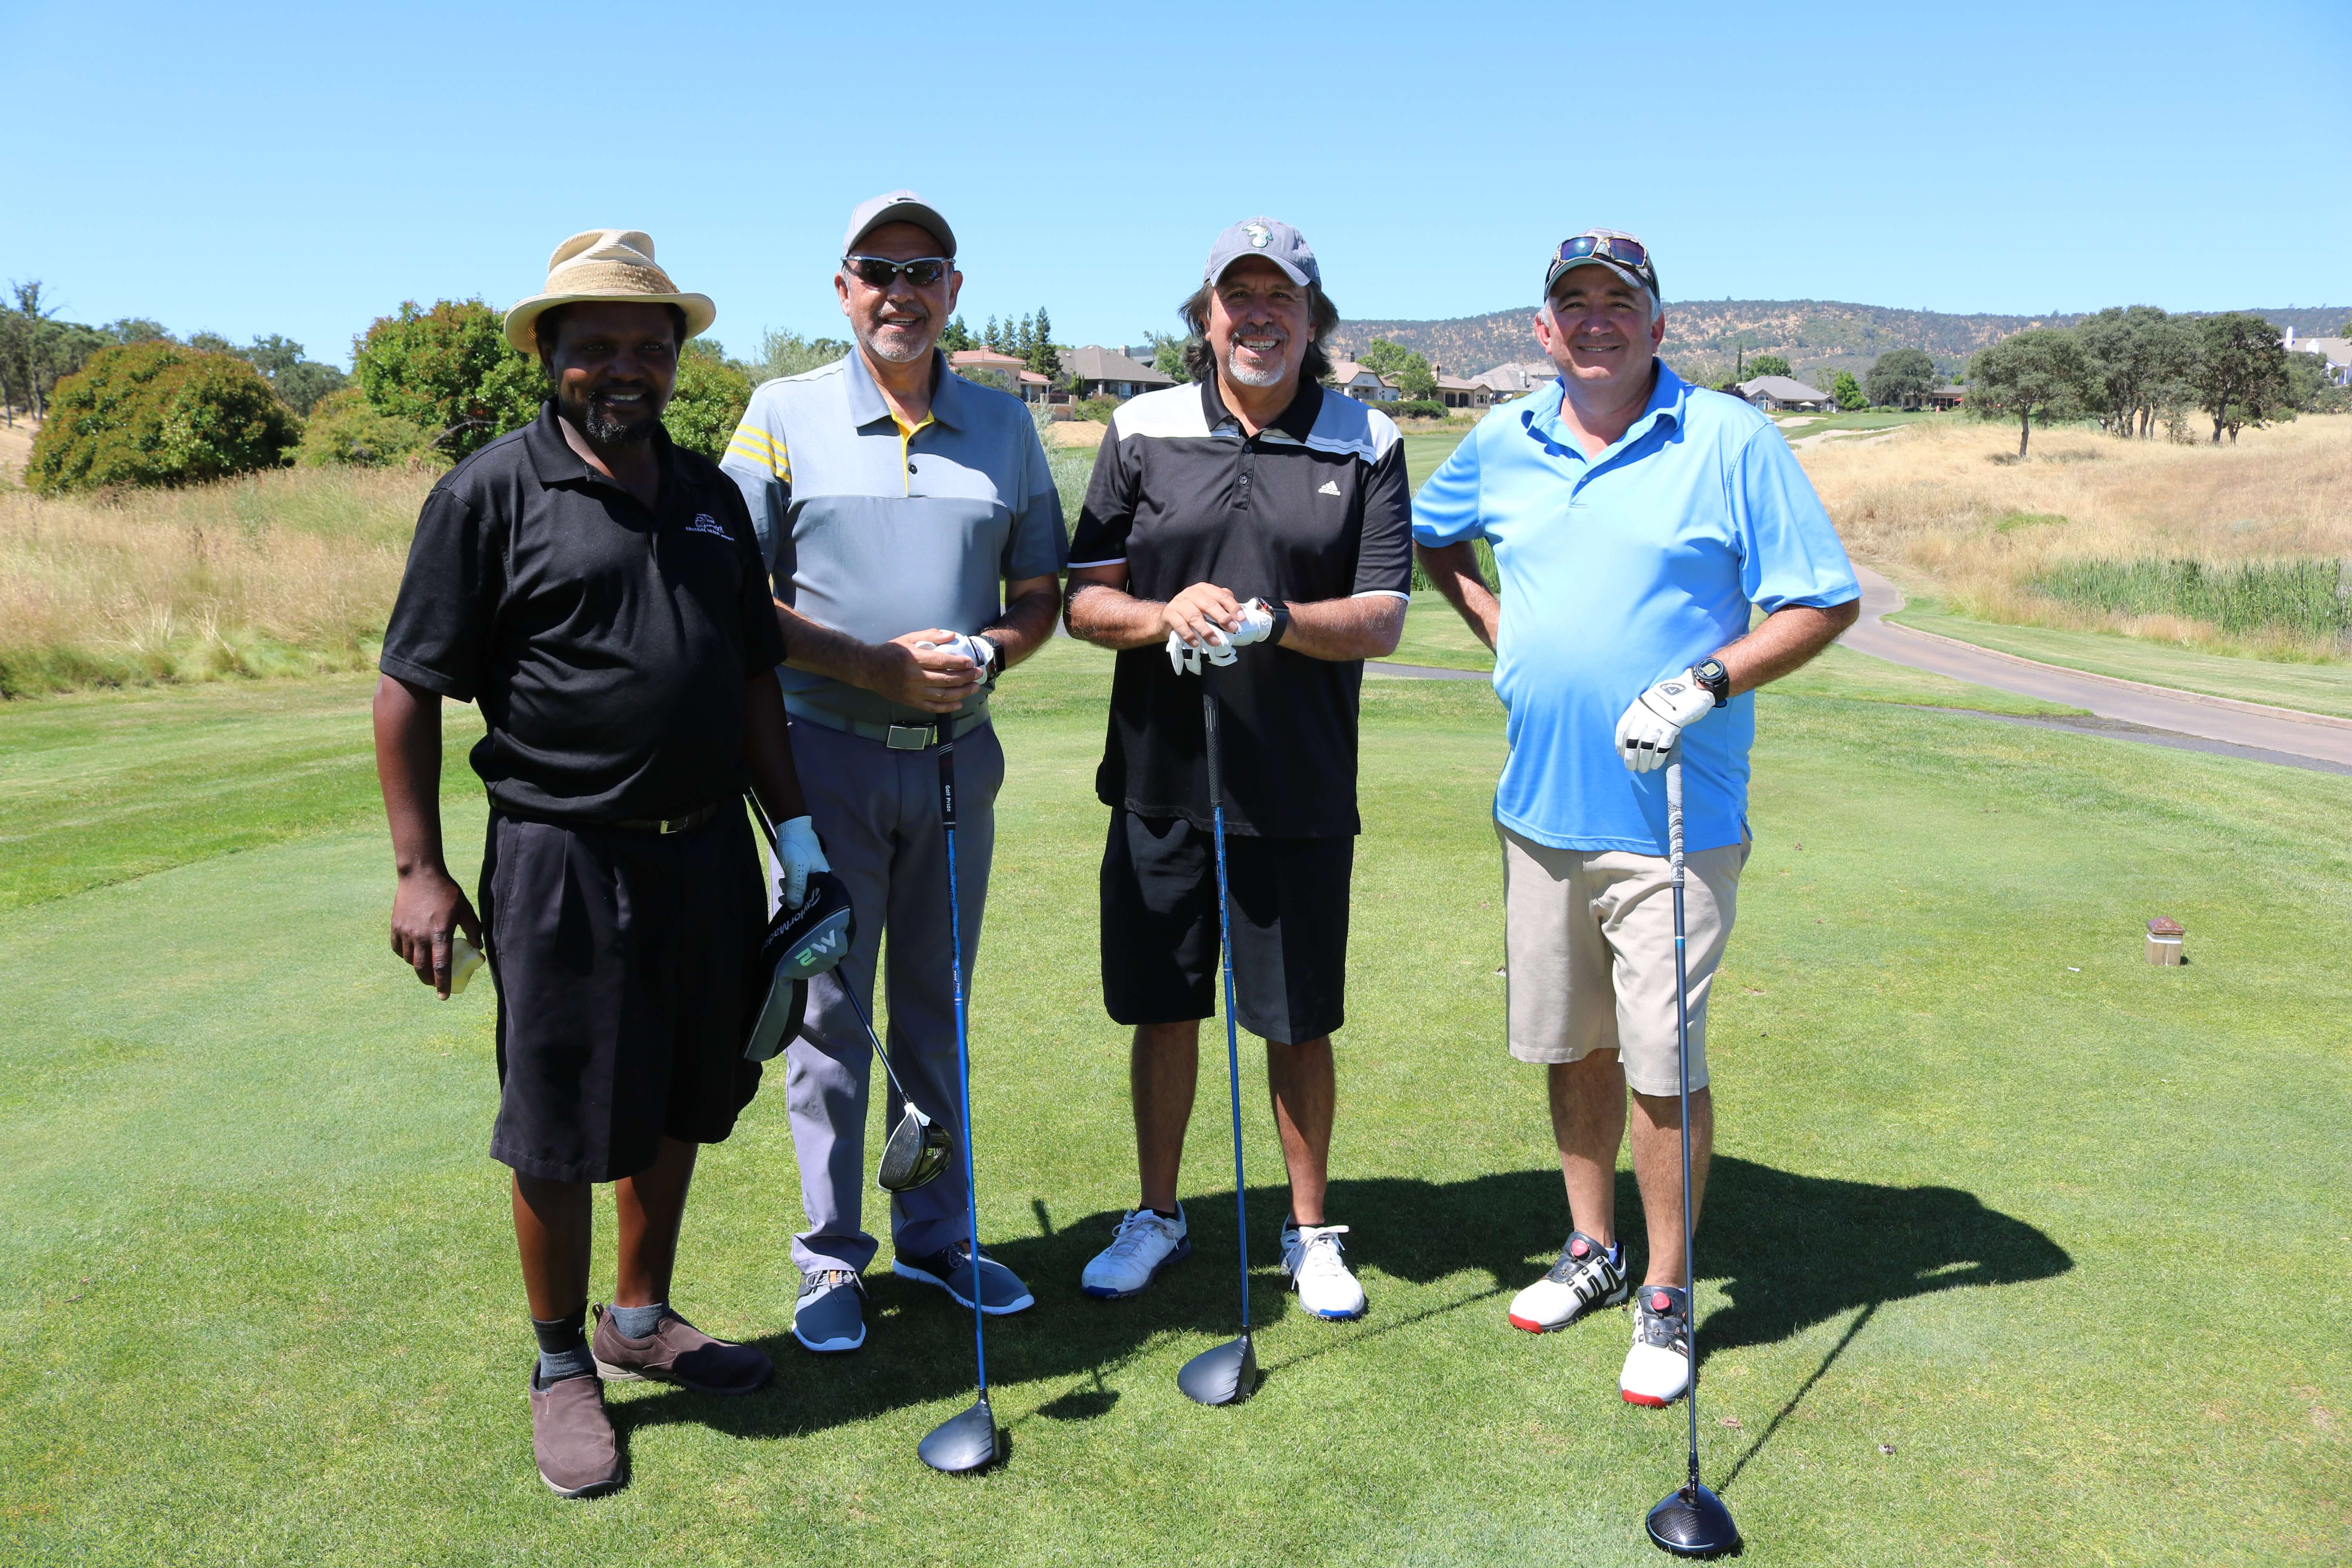 22nd Annual Golf Classic participants